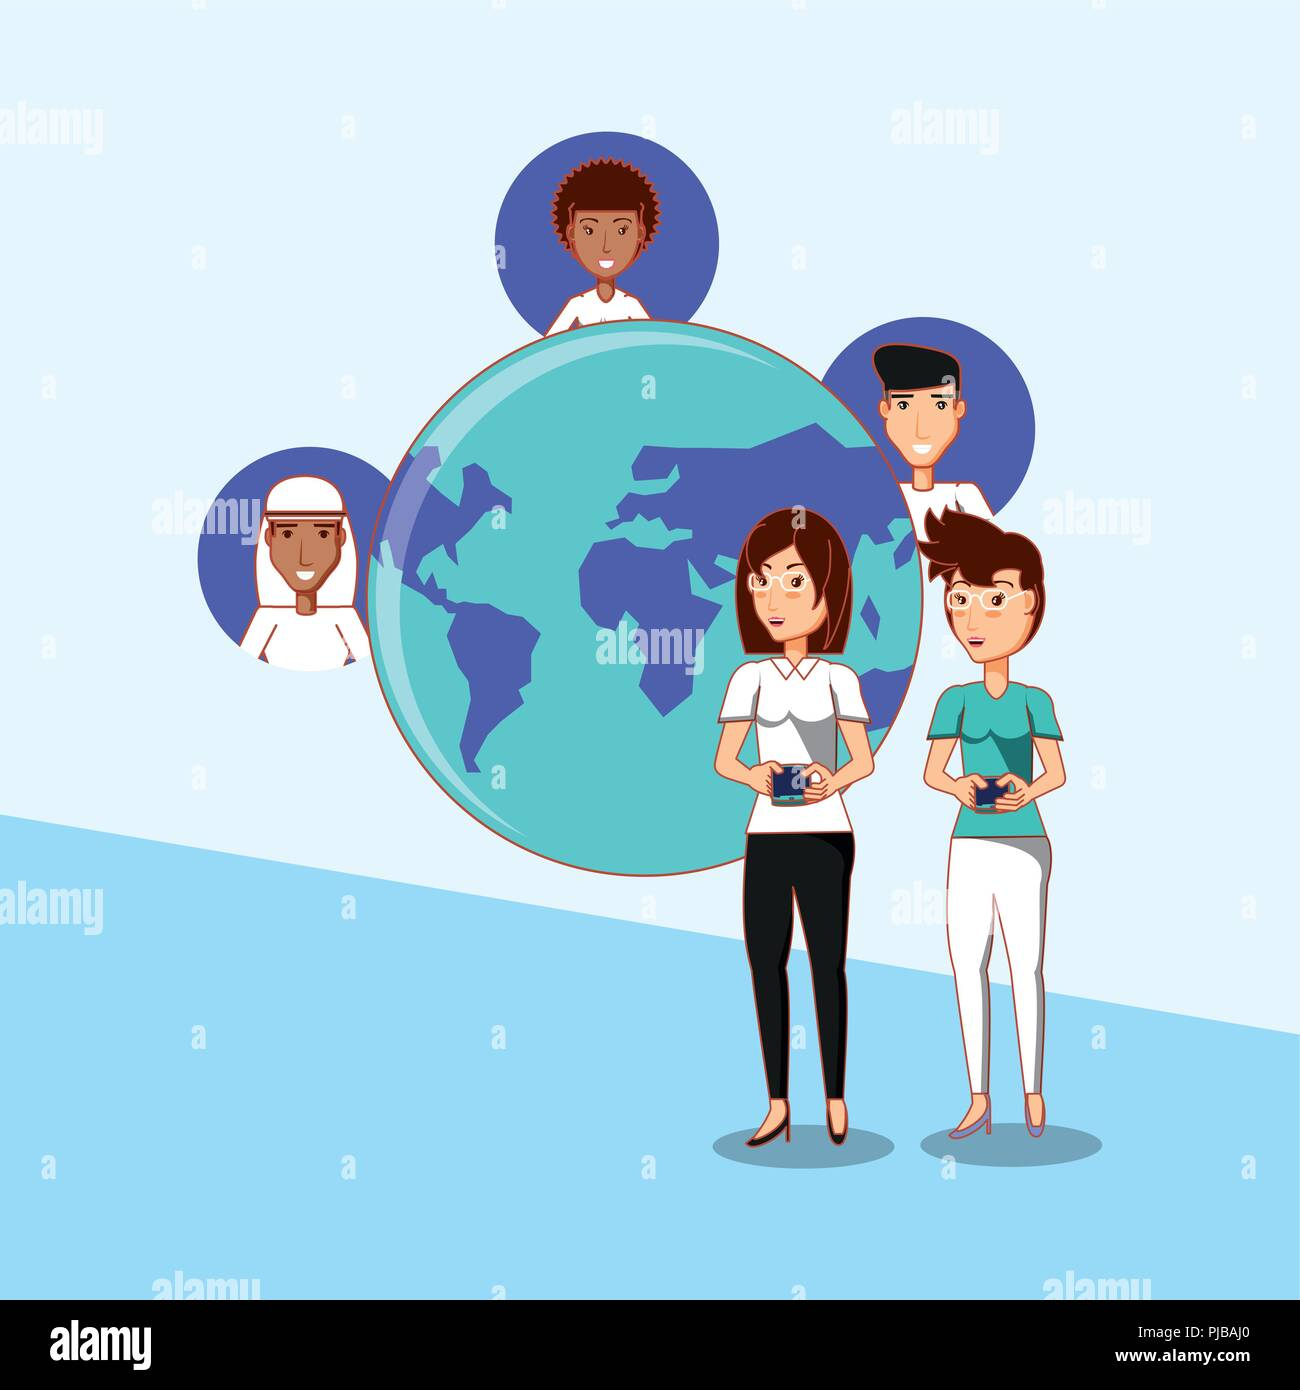 women standing with smartphone interact world people social media vector illustration - Stock Image